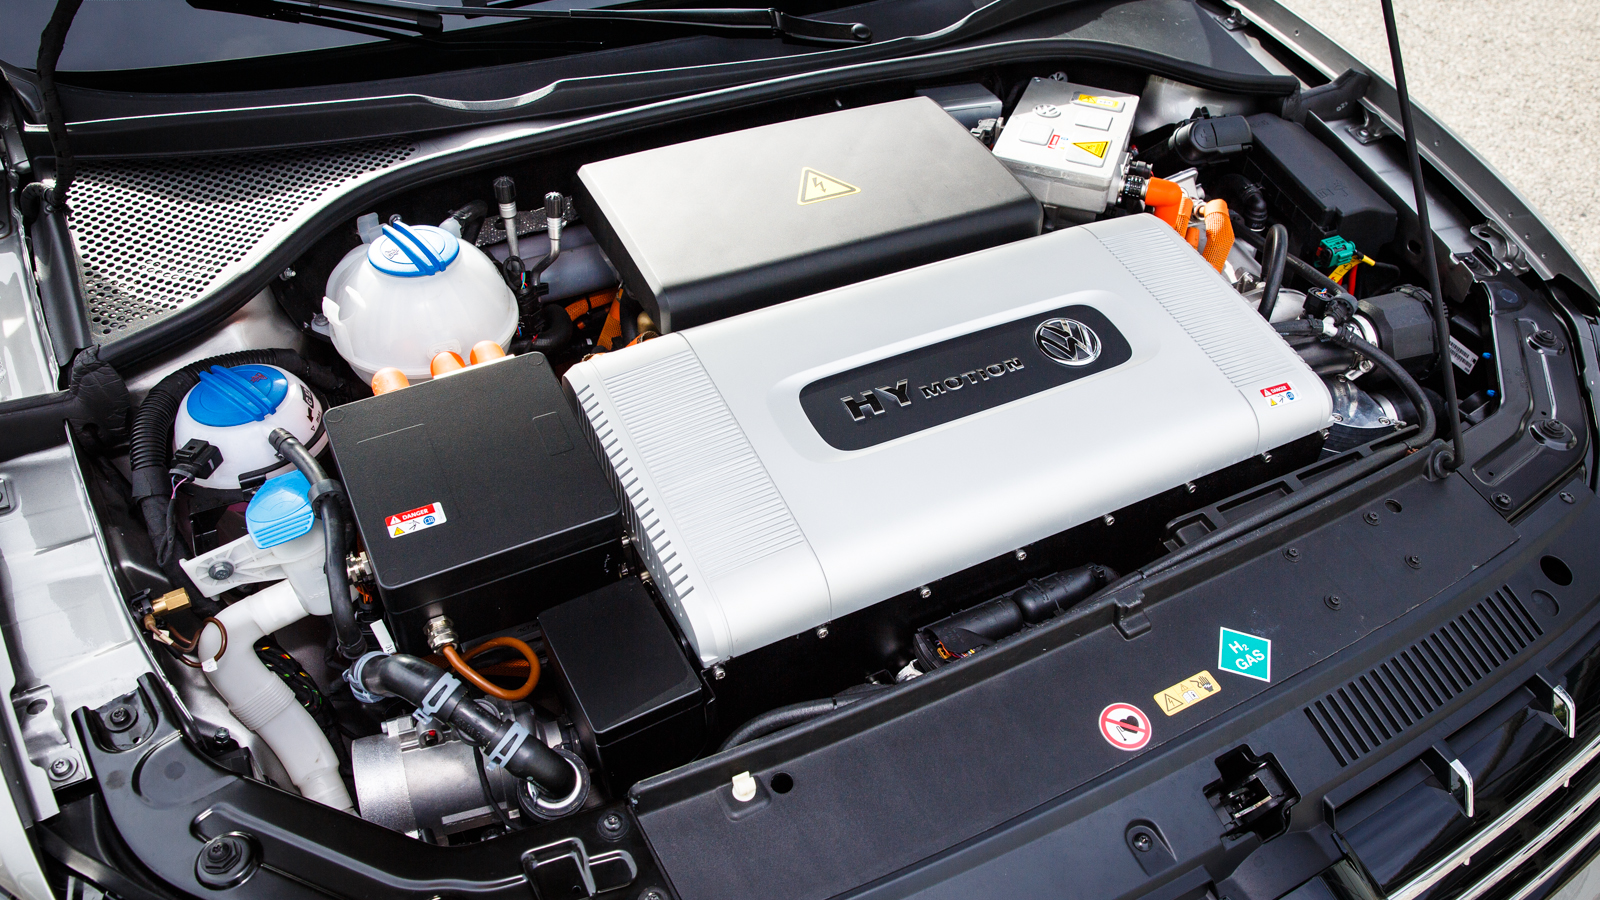 volkswagen-hymotion-fuel-cell-6055-001.jpg